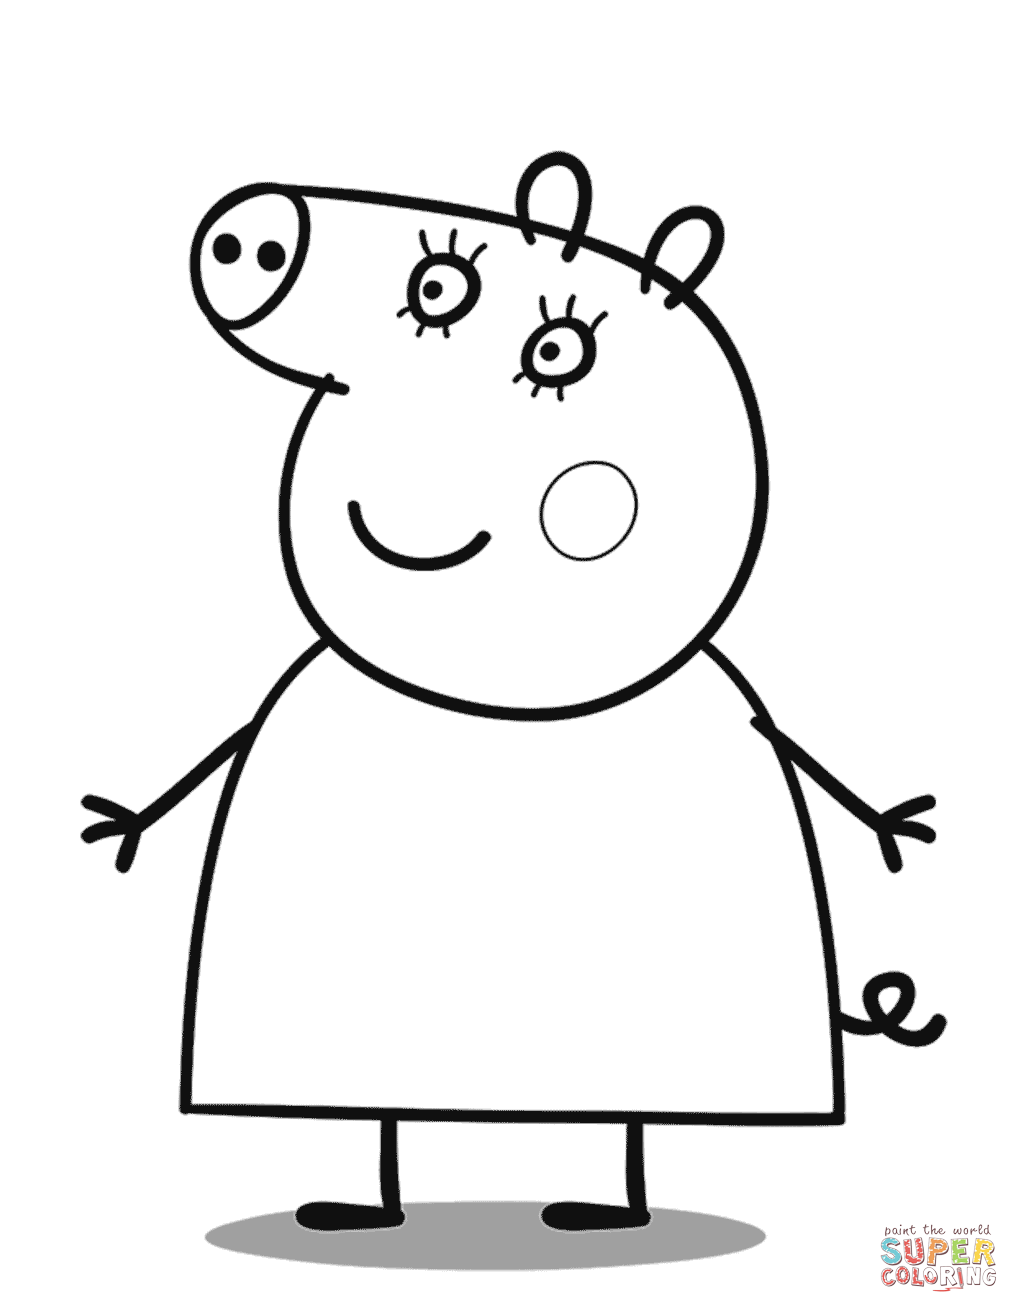 Mummy Pig Coloring Page Free Printable Coloring Pages